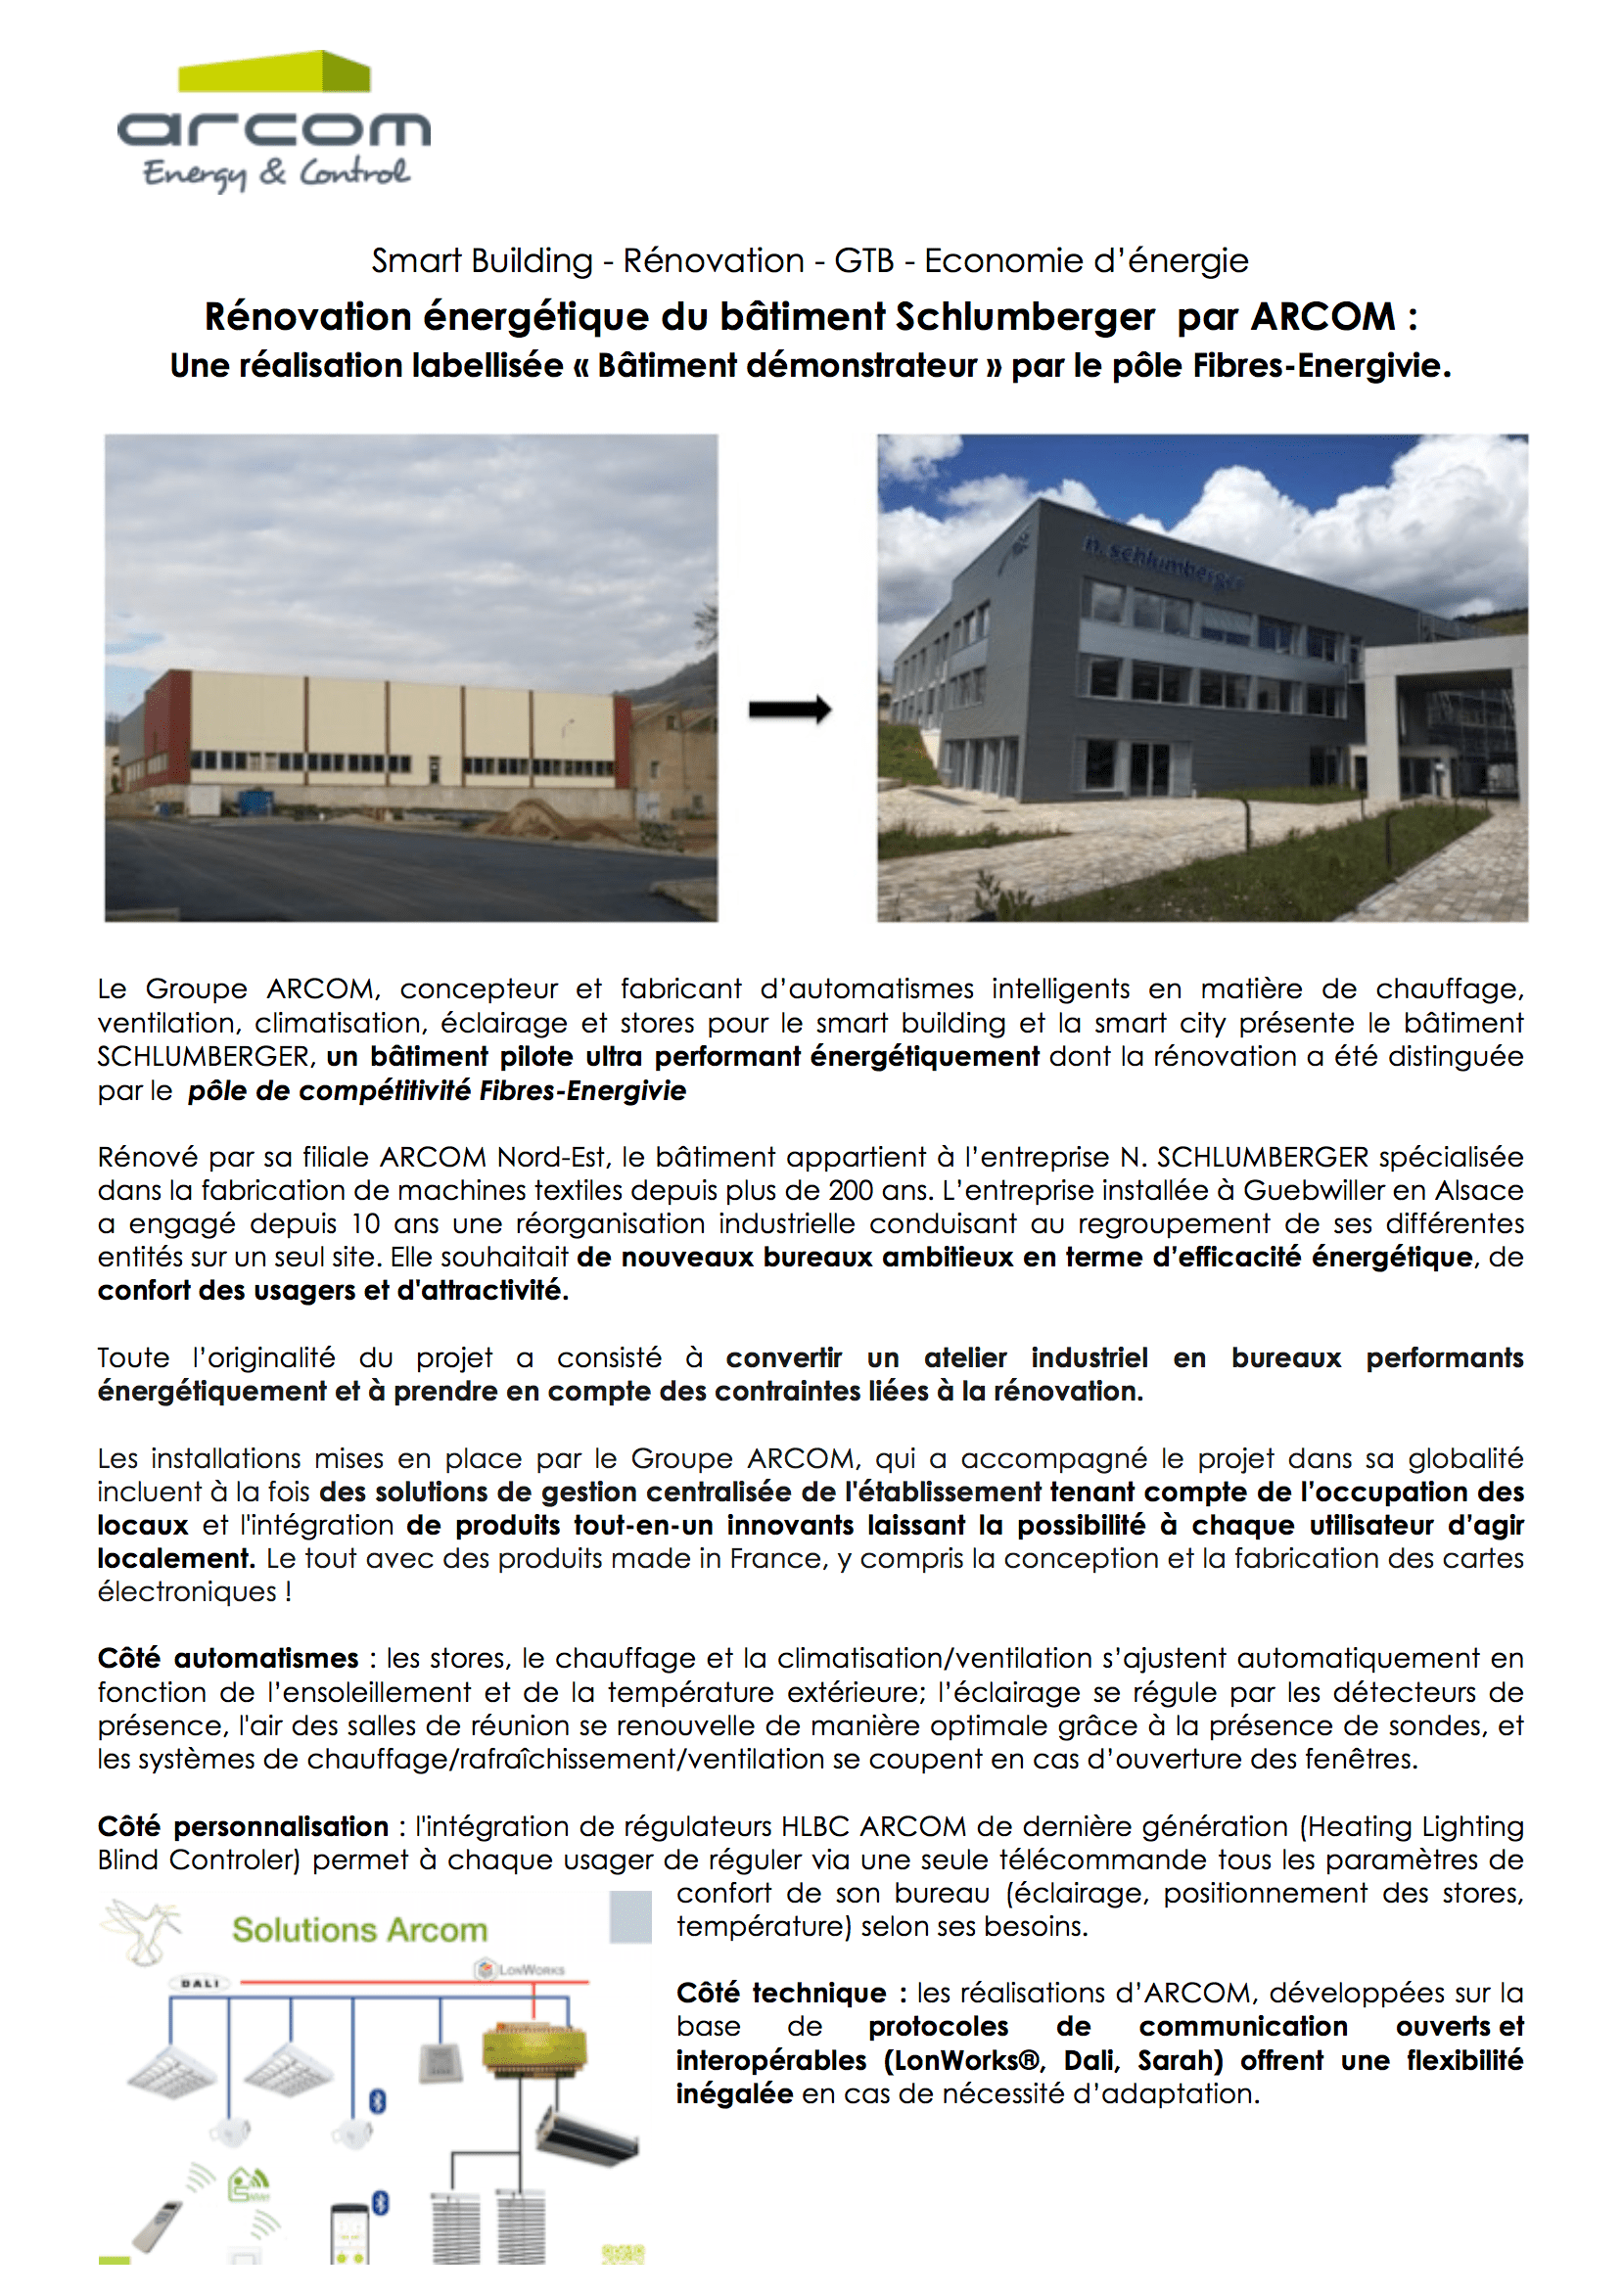 communique-de-presse-arcom-renovation-schlumberger-cover